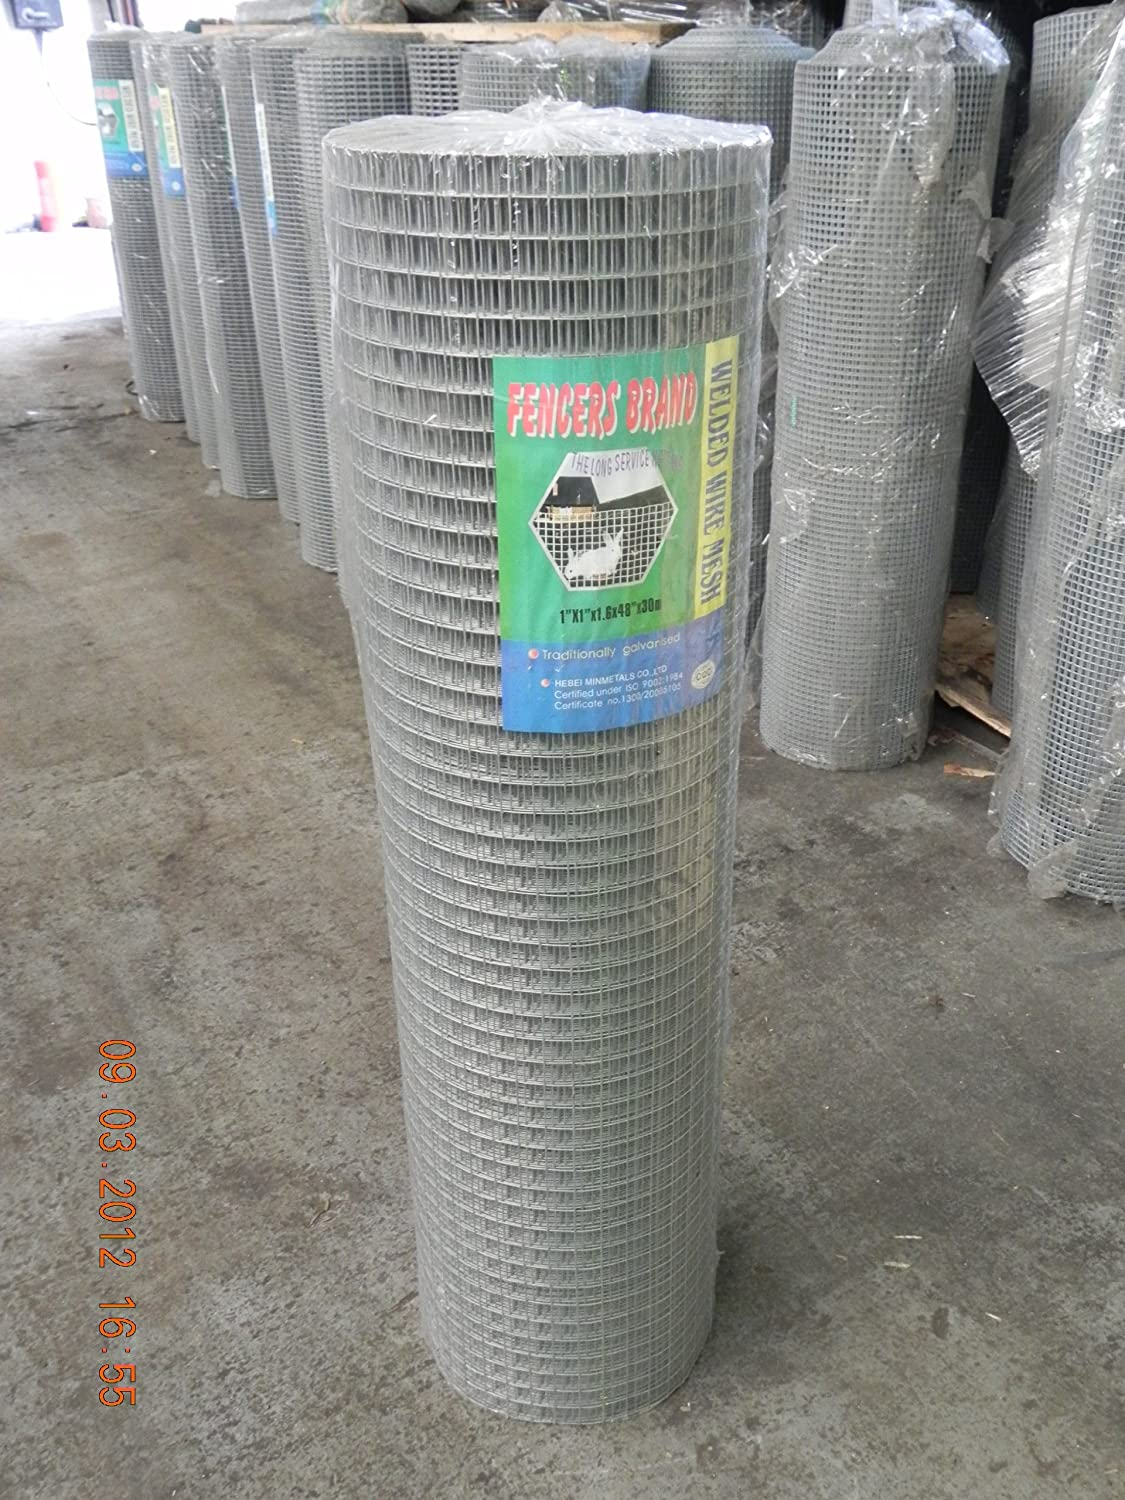 Fencers Brand Welded Wire Mesh 1 x 1 x 48 x 30mtr (19g) 4ft